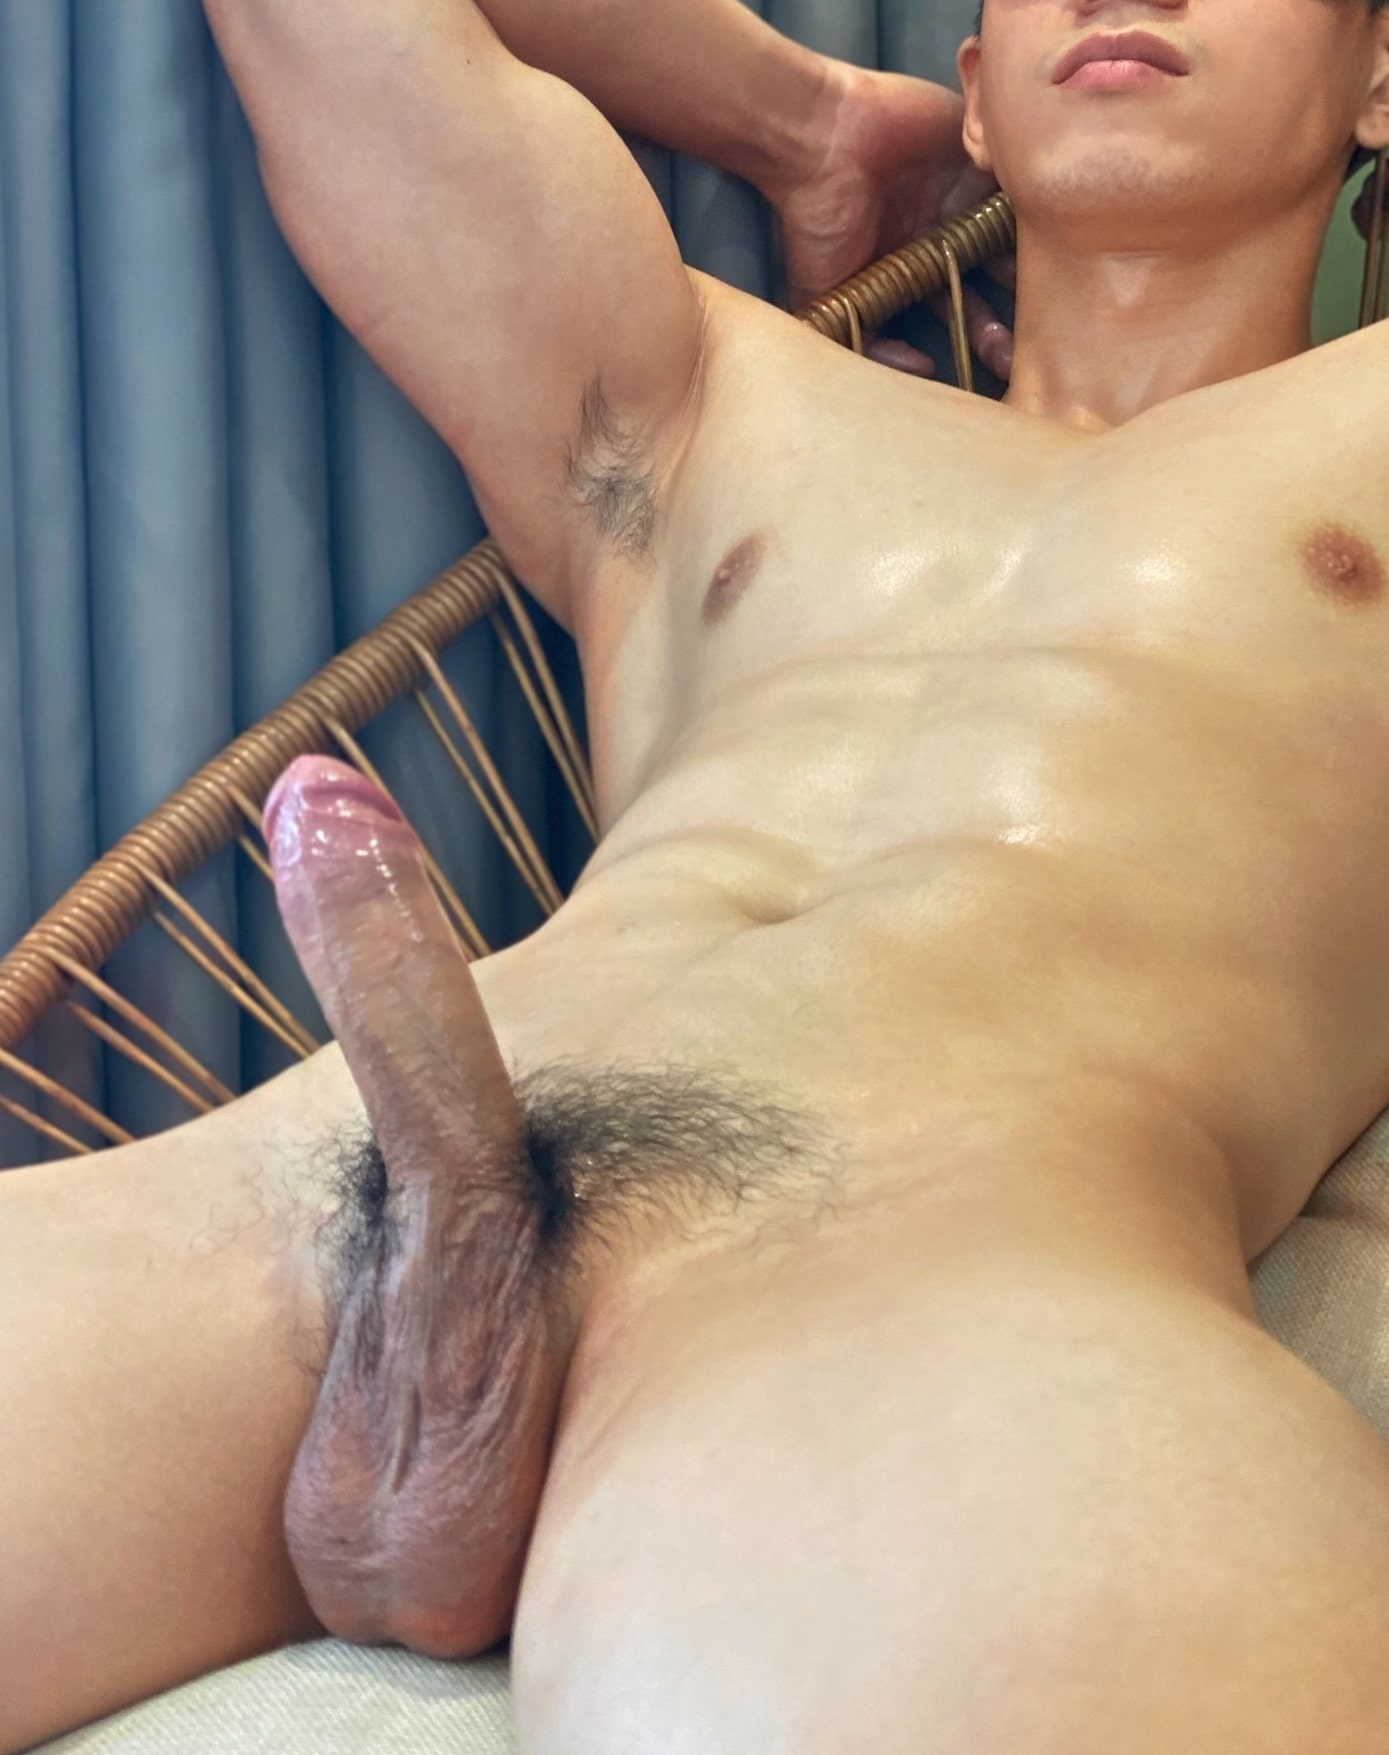 Dick and a muscular body